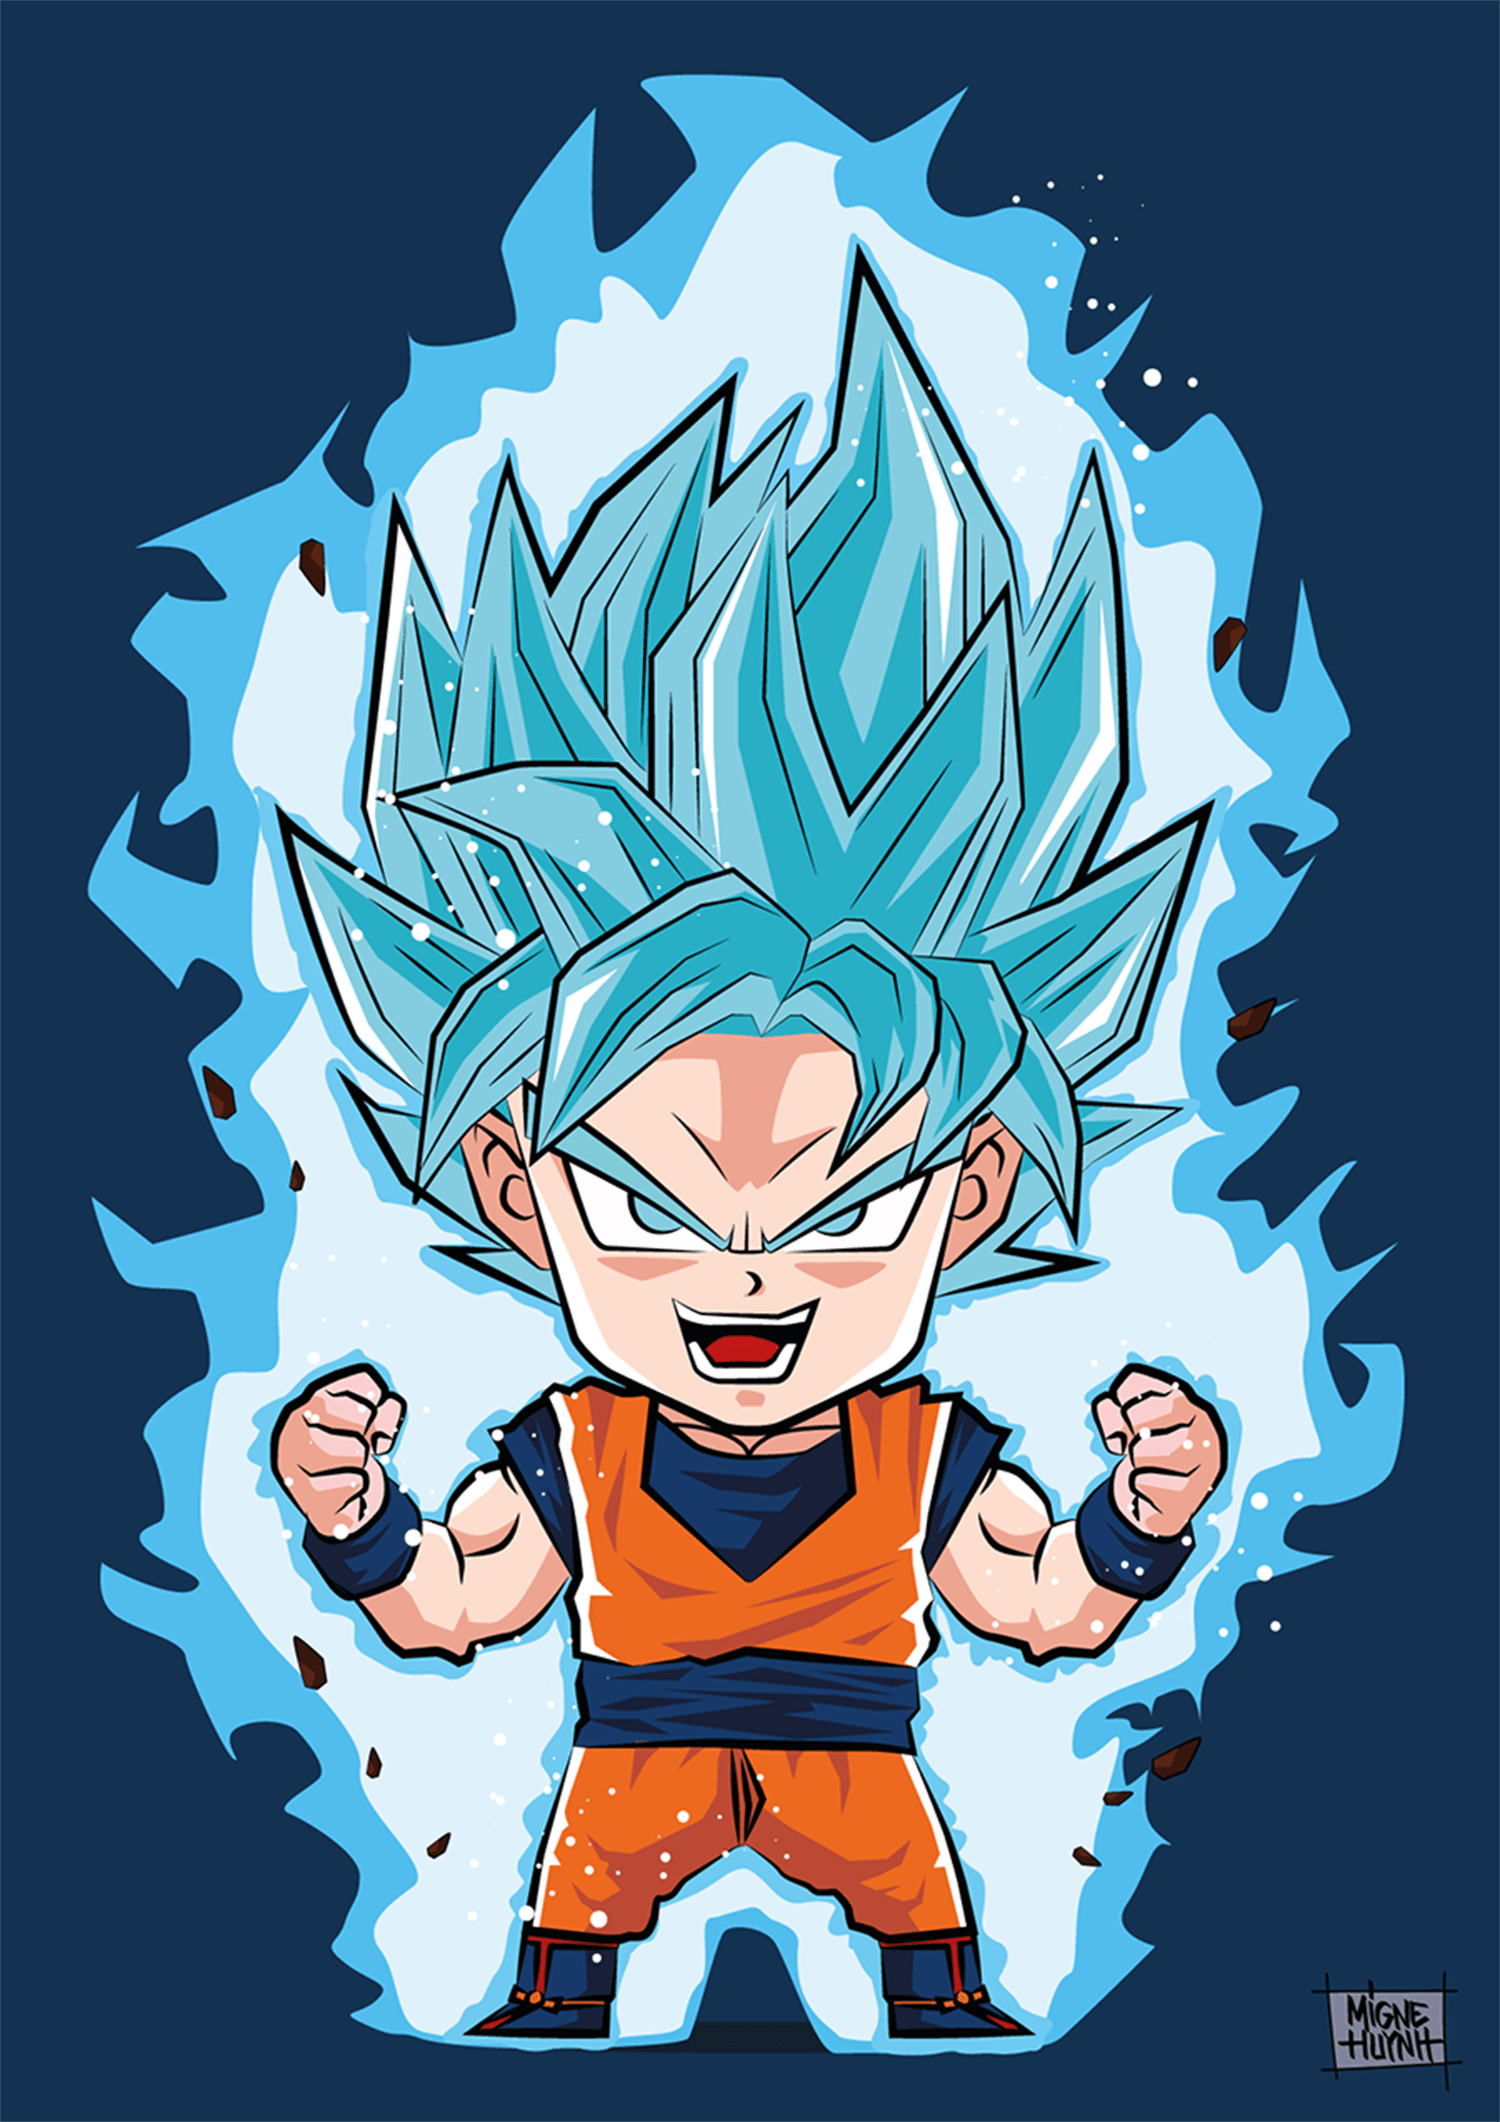 3d Wallpaper Of Dragon Ball Z A4 Goku Bleu 01 Blog Jeux Vid 233 O Cin 233 Ma Ps4 Xbox One